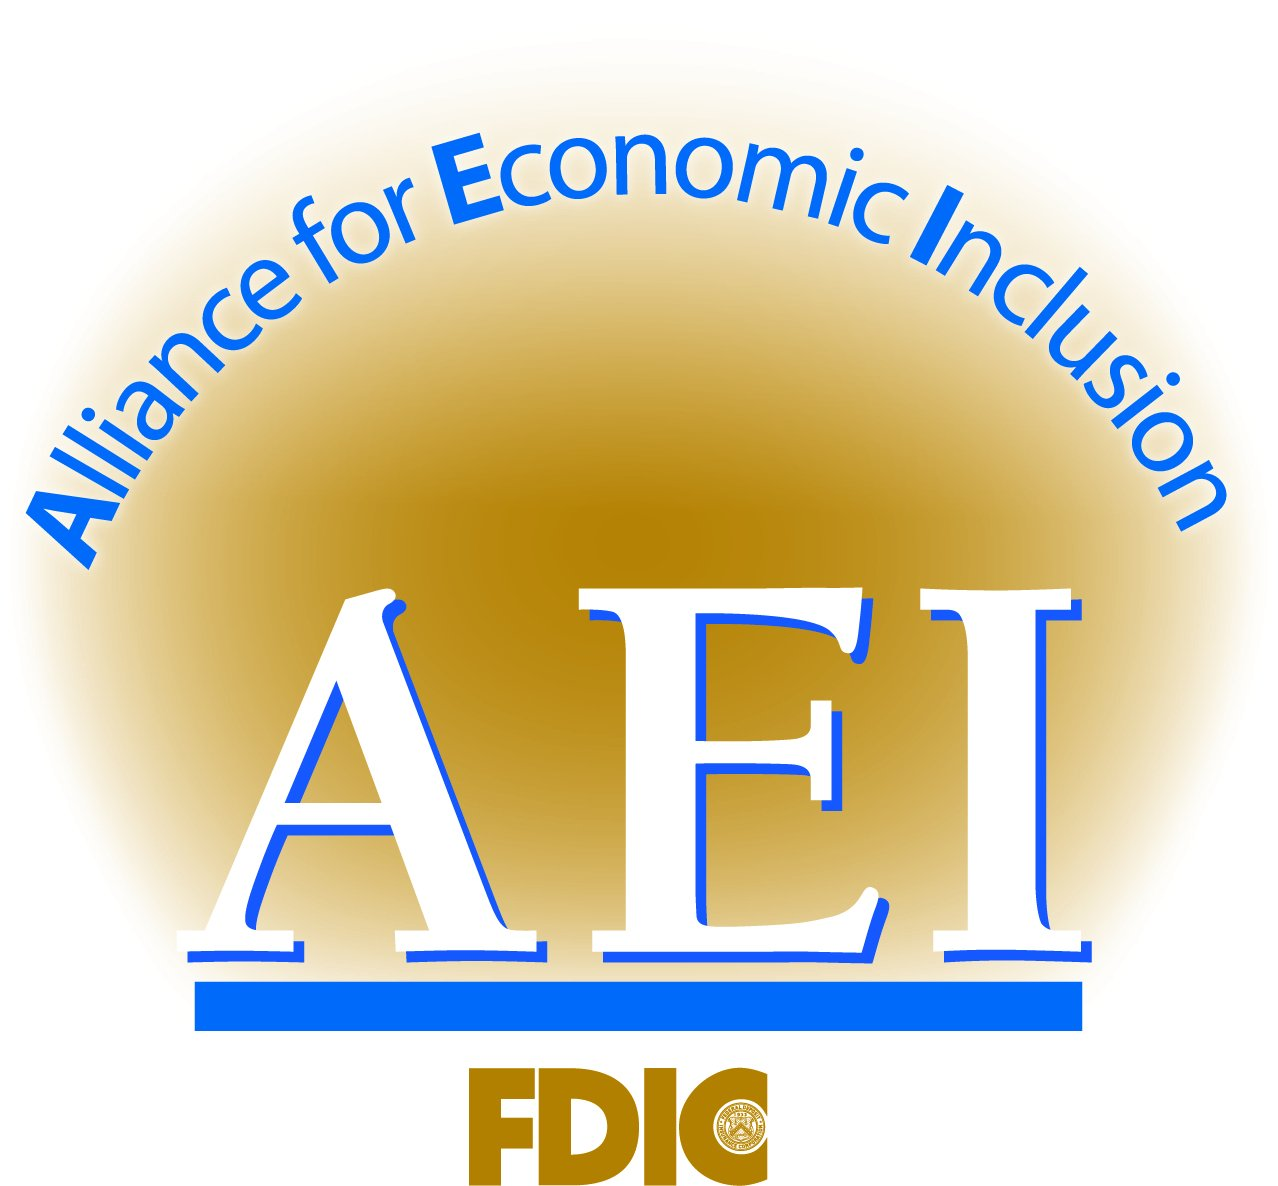 The AEI members support the goal of promoting the widespread availability and use of safe, affordable, and sustainable financial products that help people achieve financial stability and build wealth.